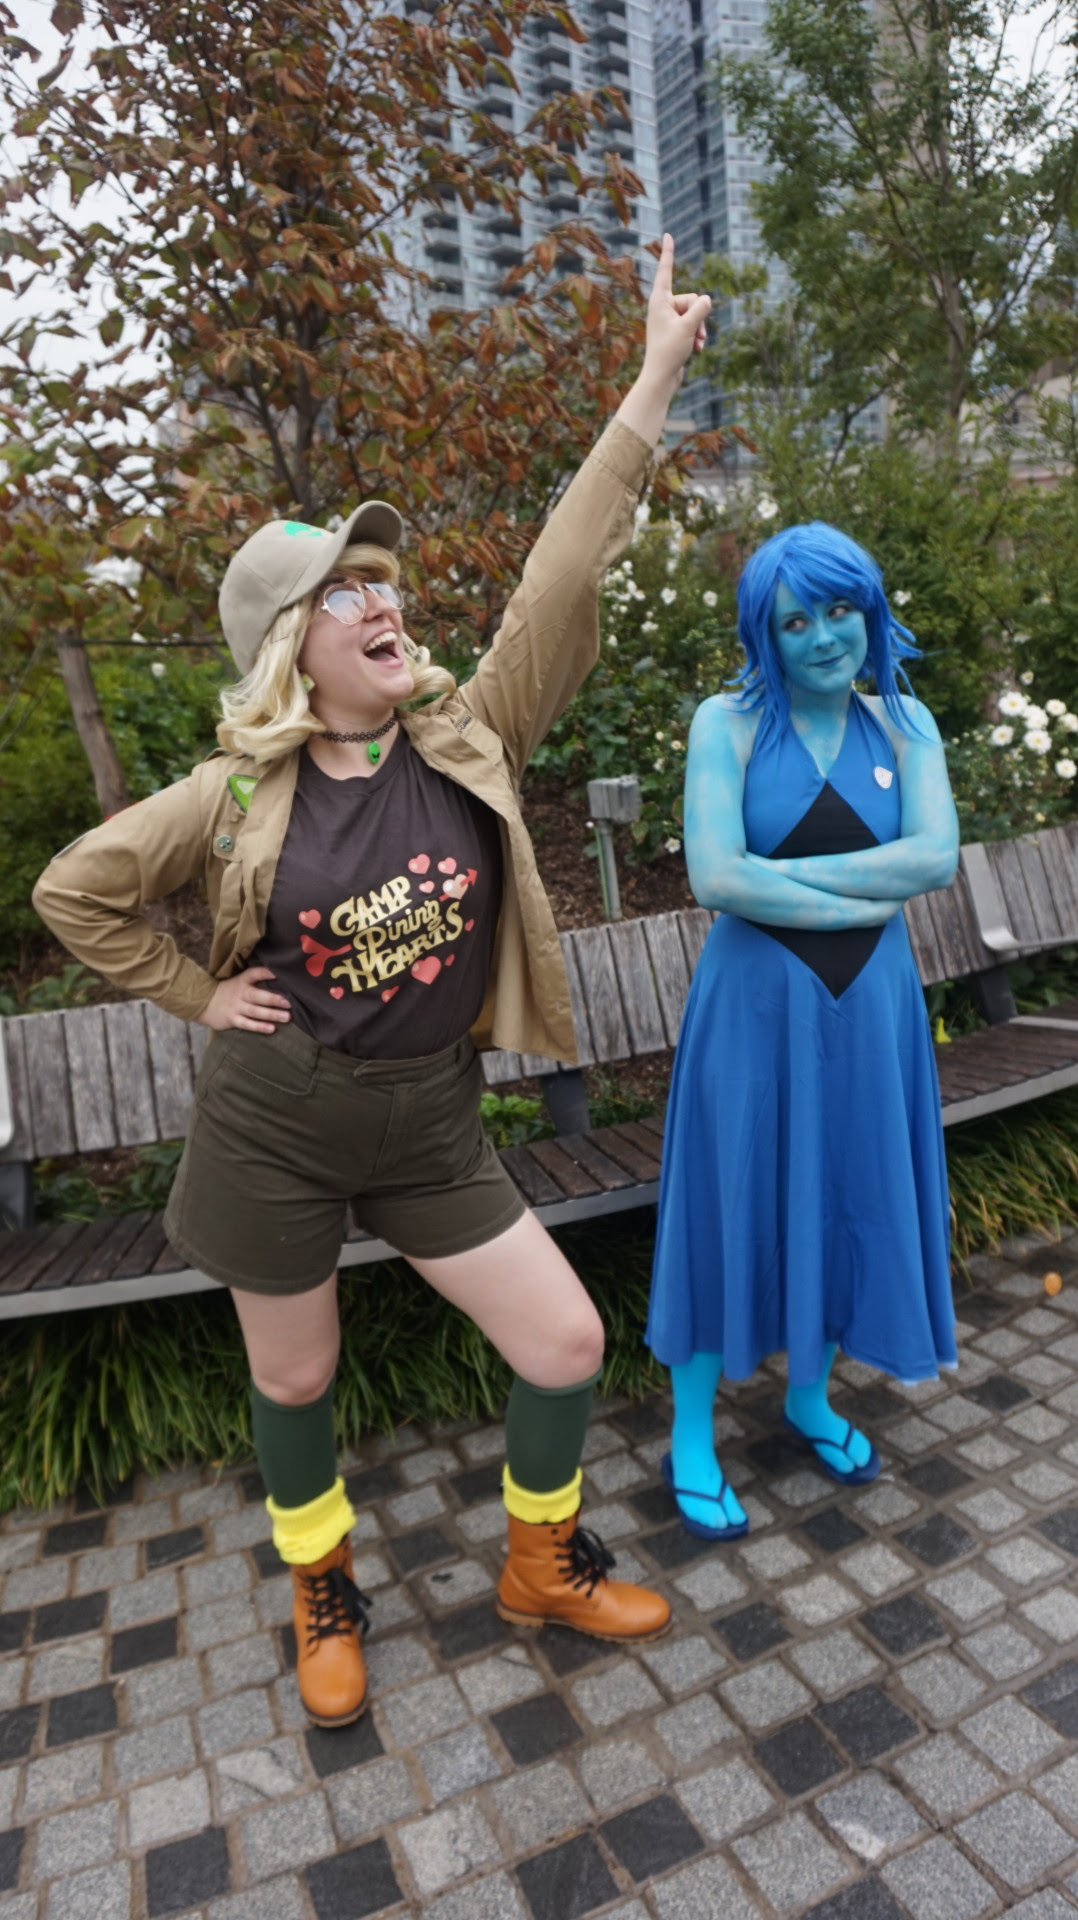 NYCC Steven Universe Cosplay was F A N T A S T I C! Here's these two gems (pun very intended) who showed up to a little (failed lmao) meet-up I did and let me take some pictures! Follow them...